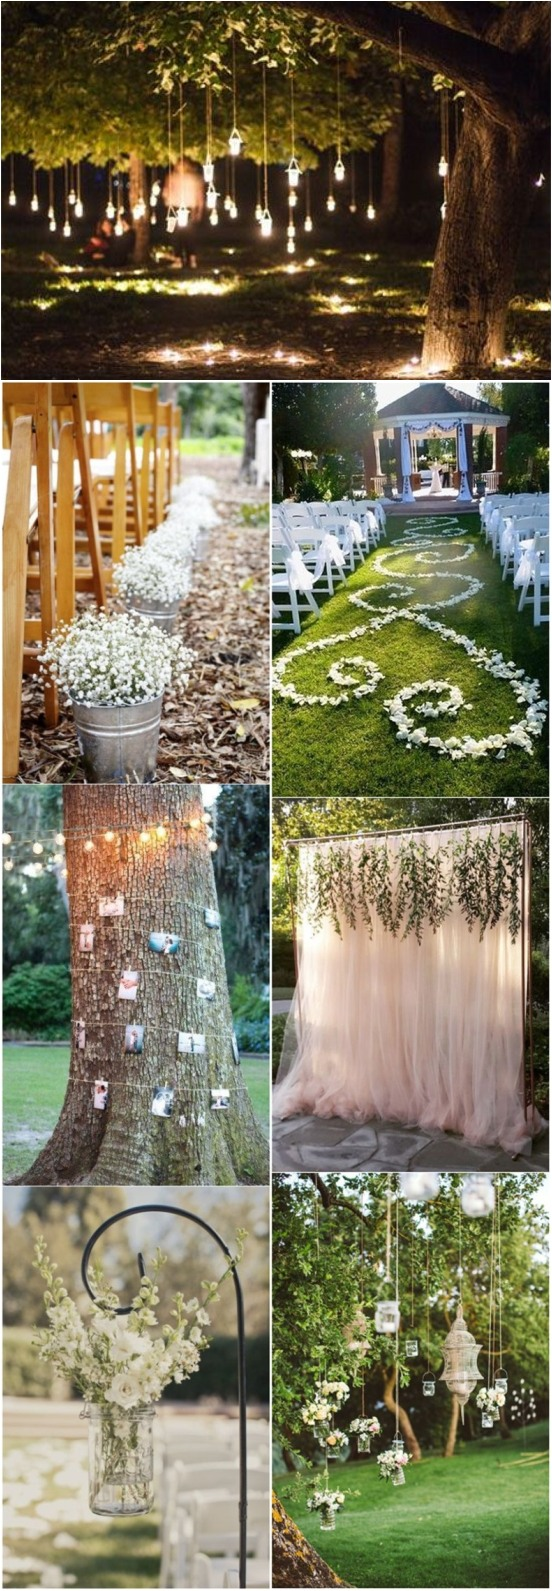 20 genius outdoor wedding ideas outdoor wedding decorations ideas junglespirit Image collections